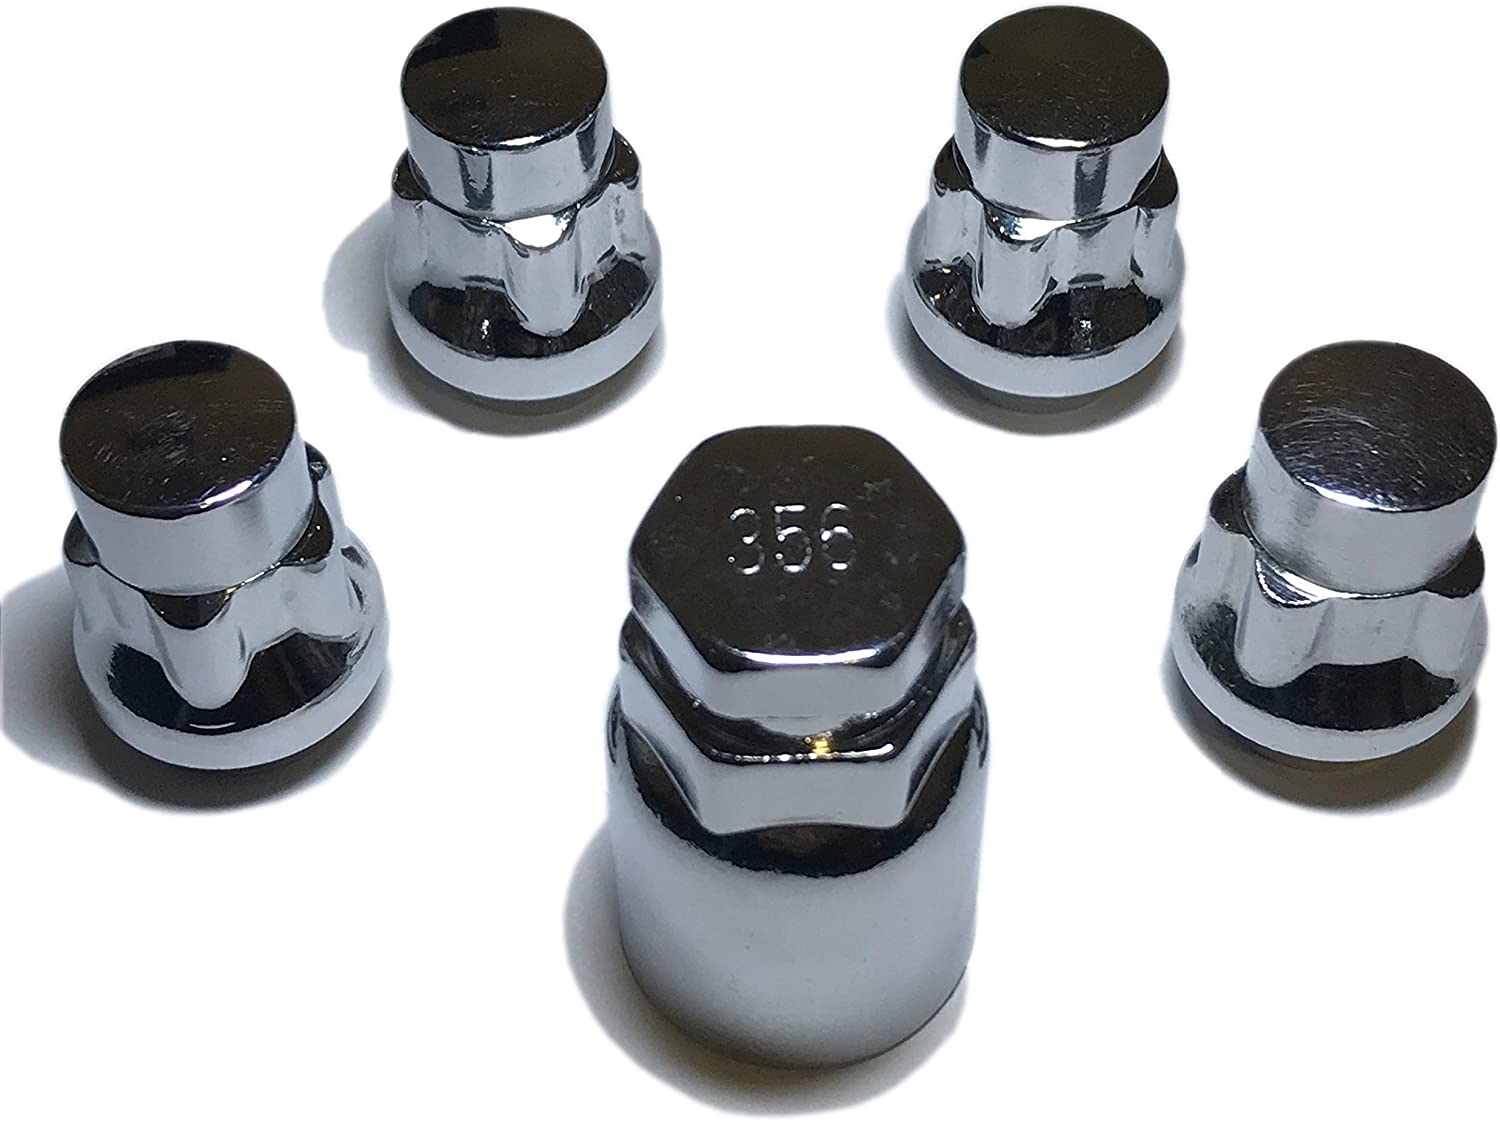 Set of 4 + Key Storage Pouch Included Lug Nuts with Unique Key Utopicar Wheel Locks Cone Seat Tire Theft Protection Best Key Replacement Program Size 12-mm X 1.5